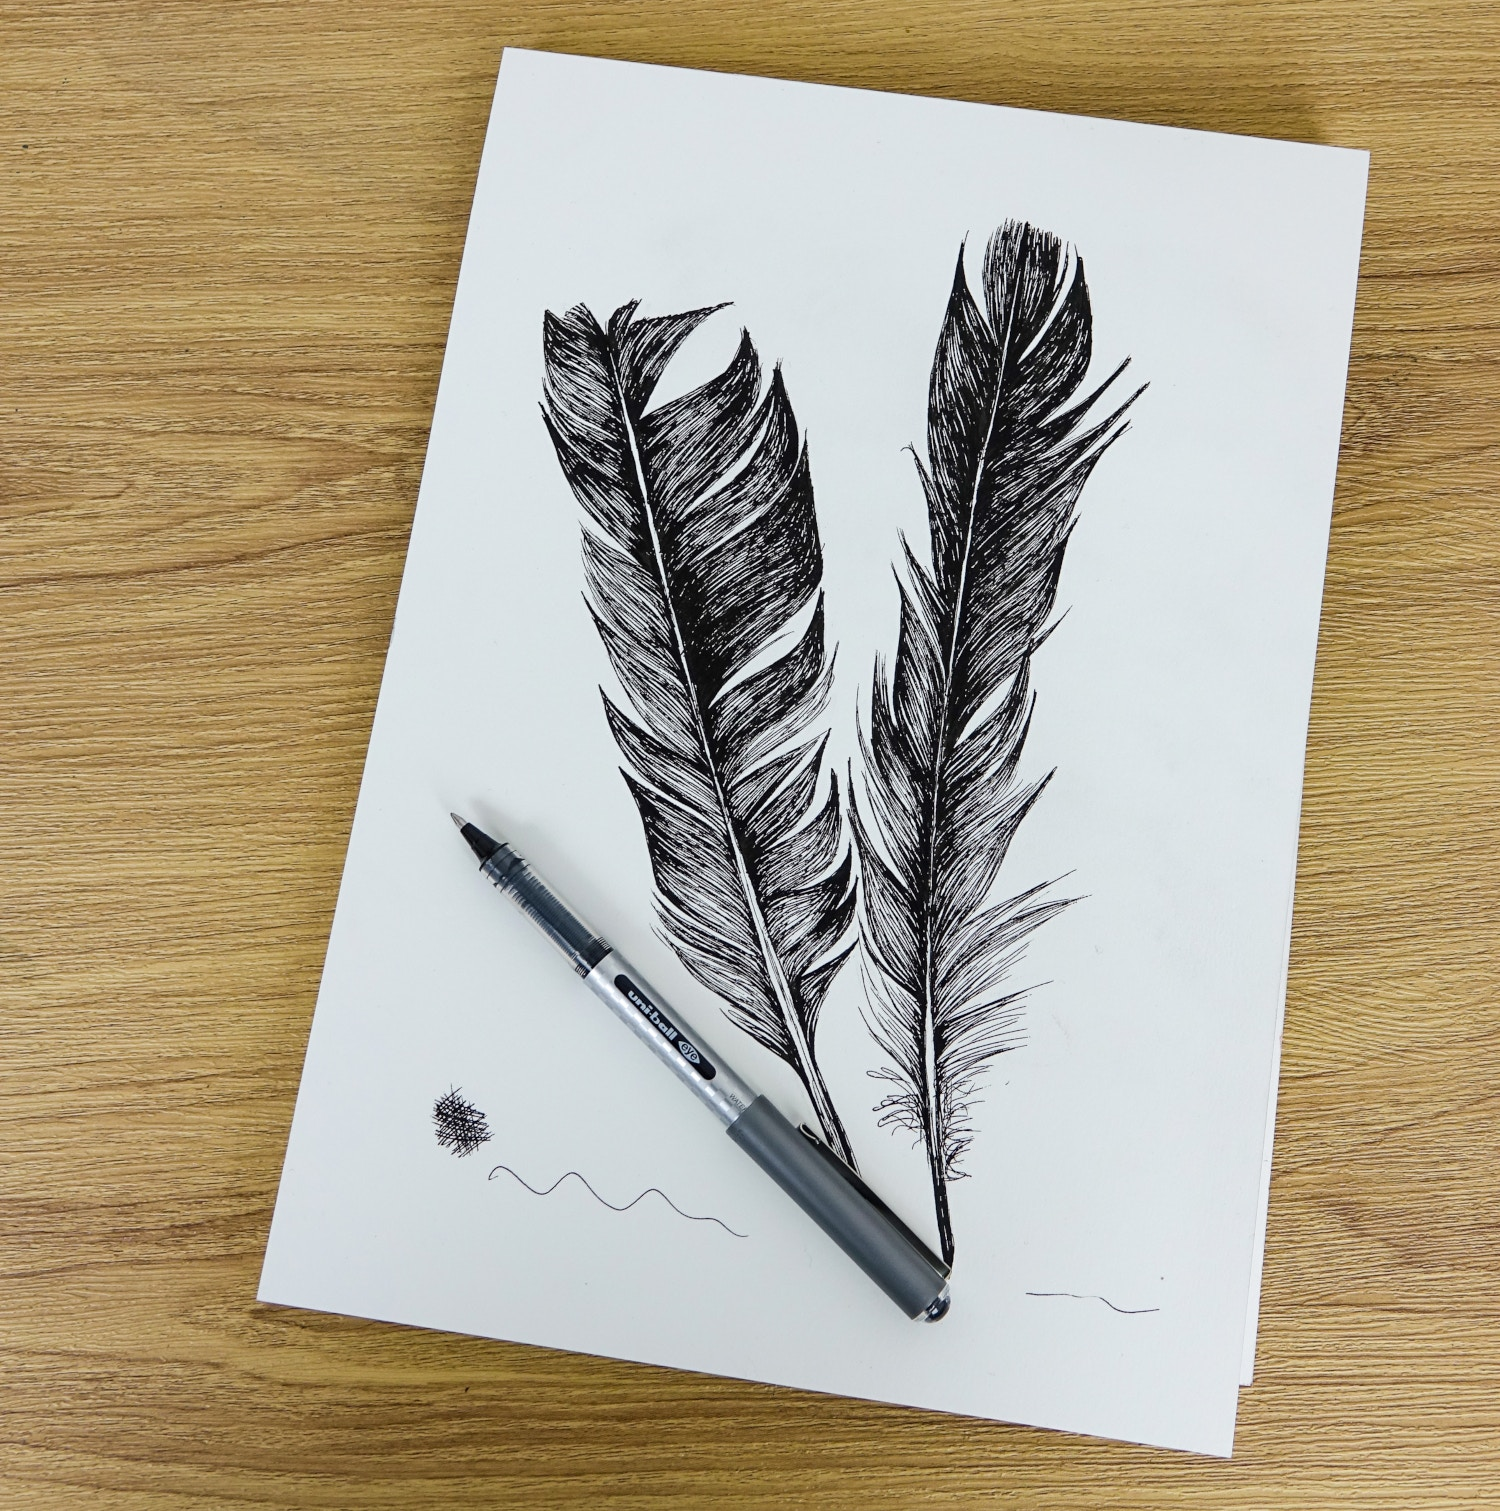 A sketch of two feathers using a Uni-ball Eye Designer pen